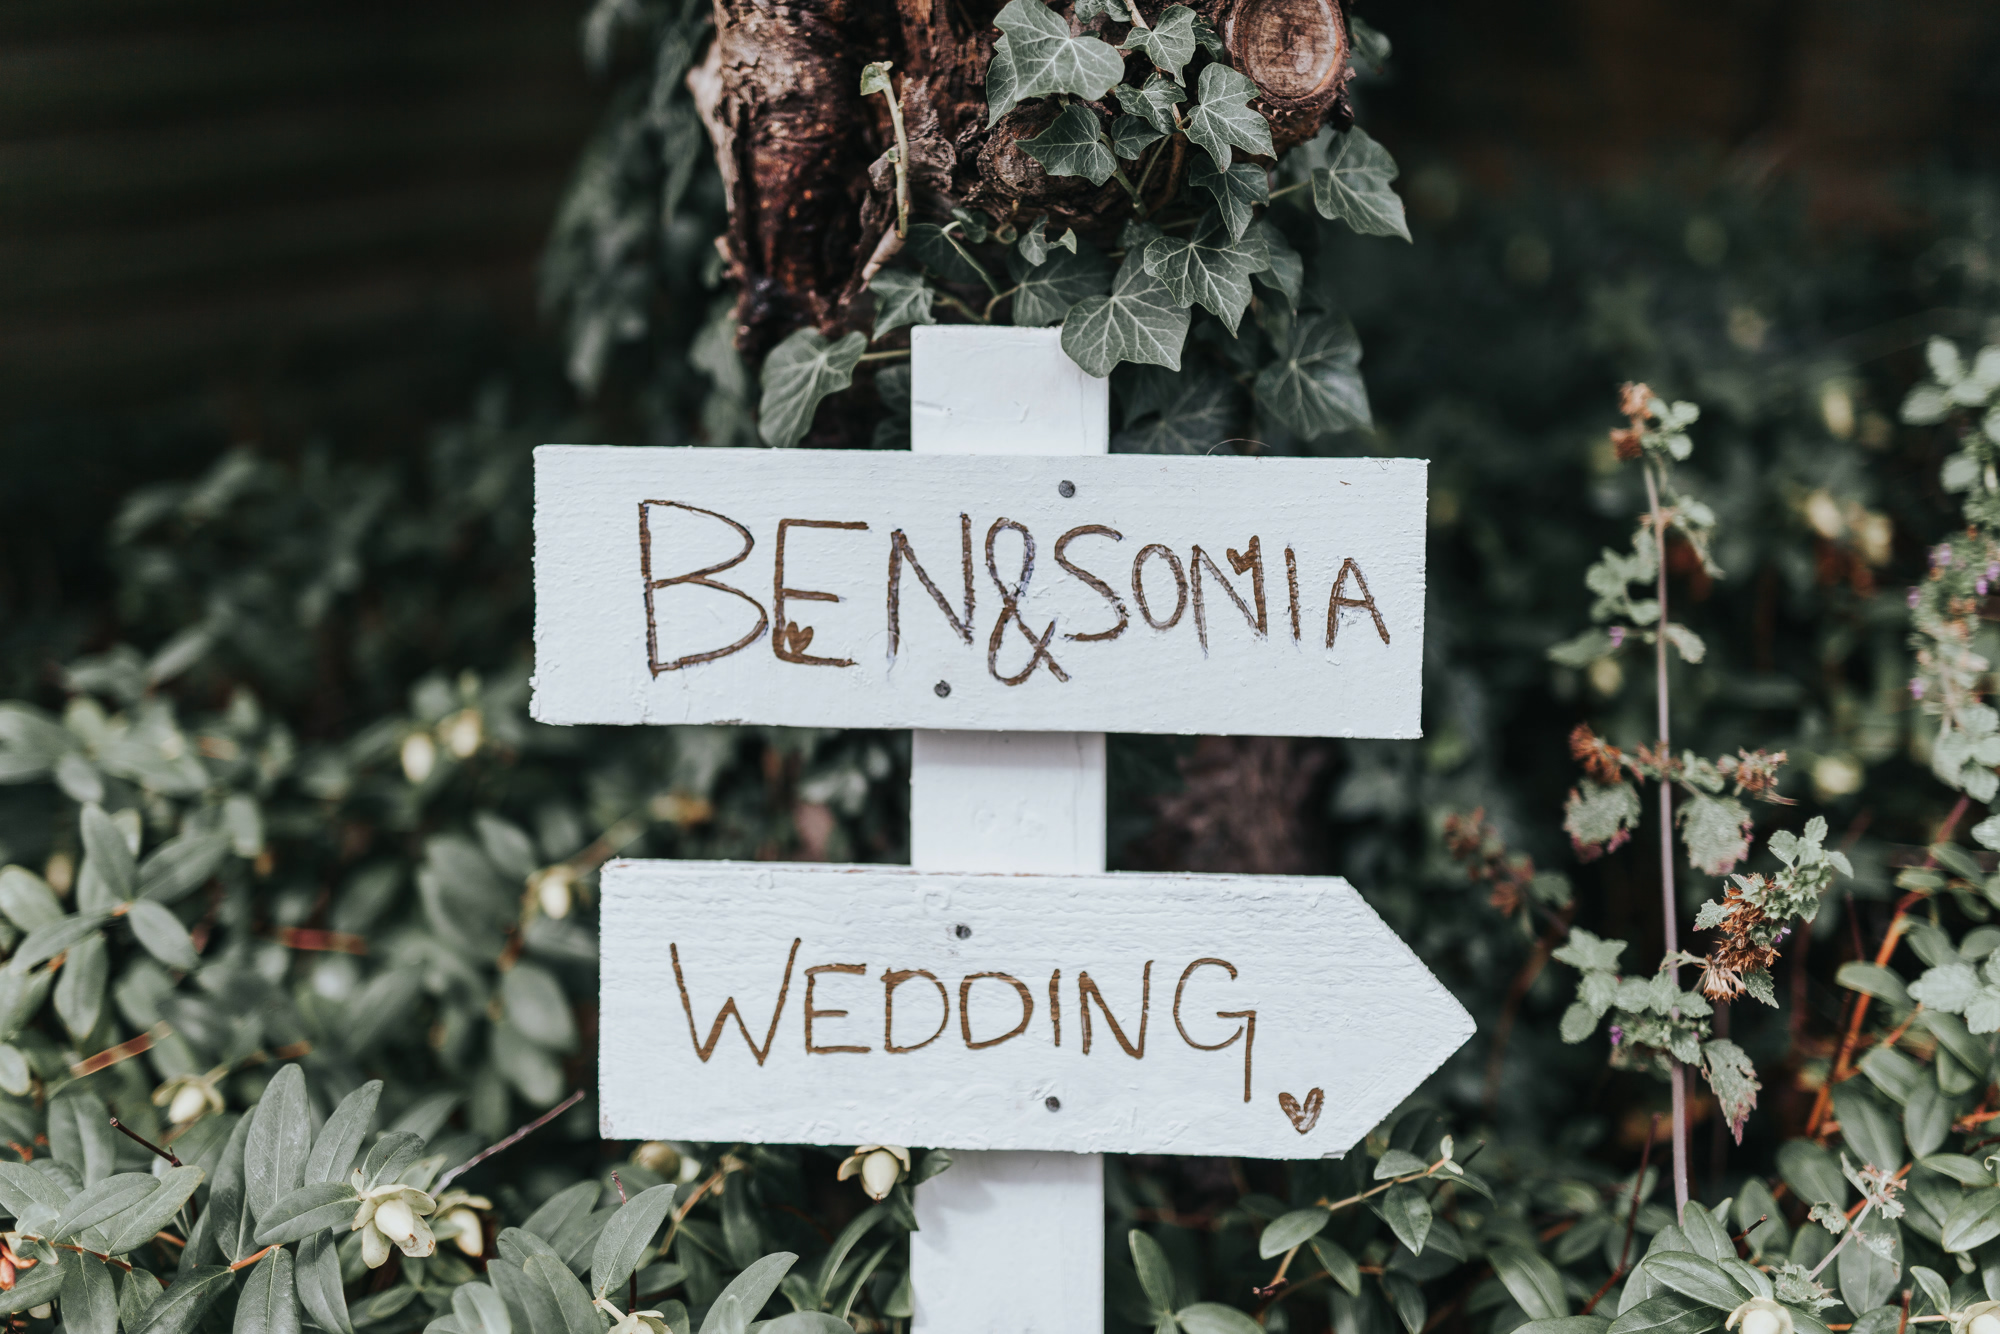 Sonia Ben Backyard Wedding Photography DIY Wedding Ideas Cambridge London31